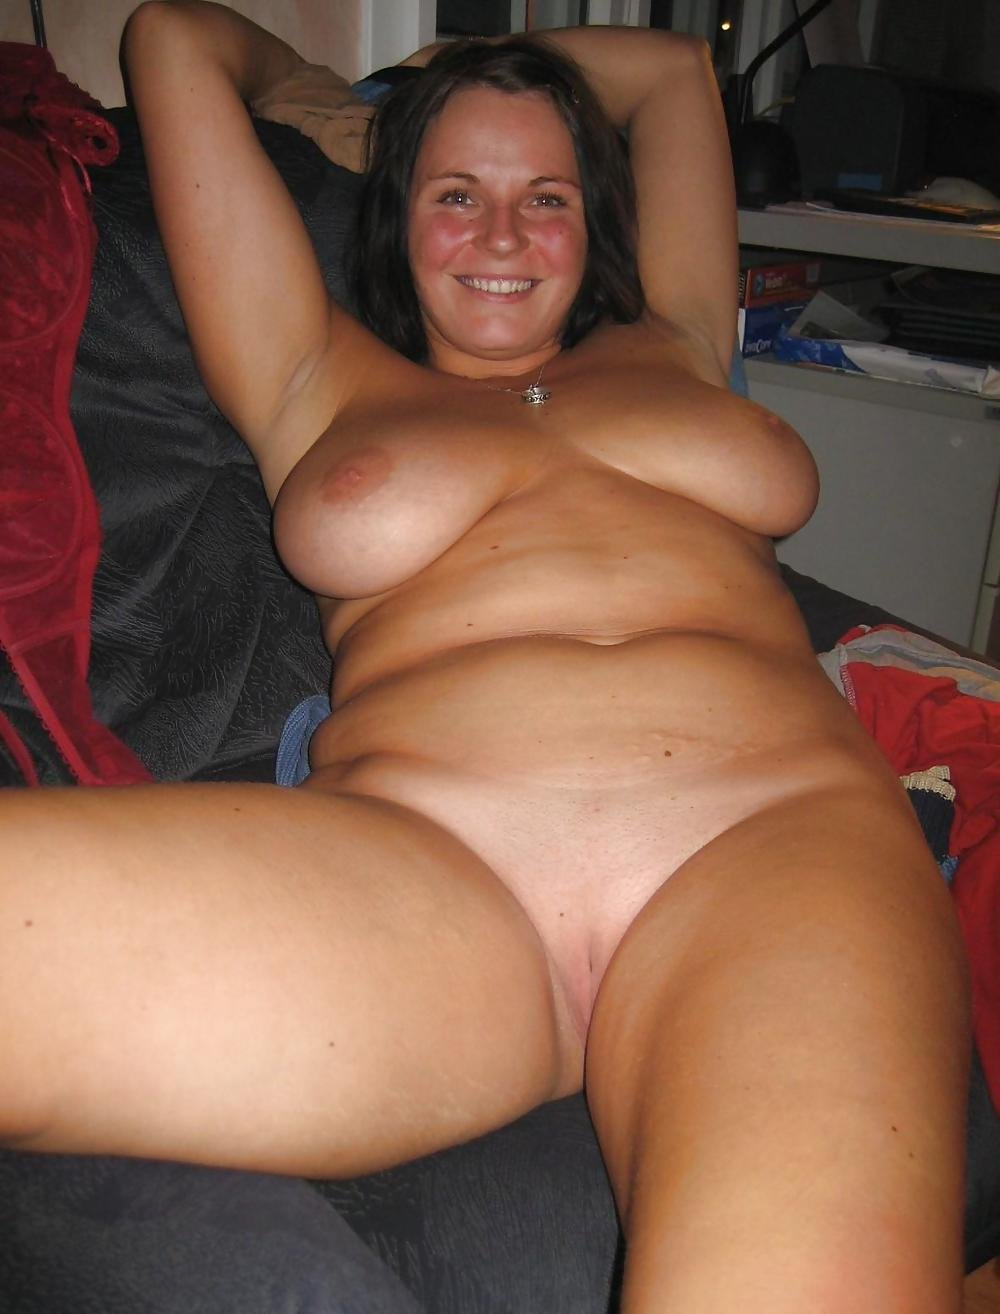 Ass mature amateur bbw solo sexy